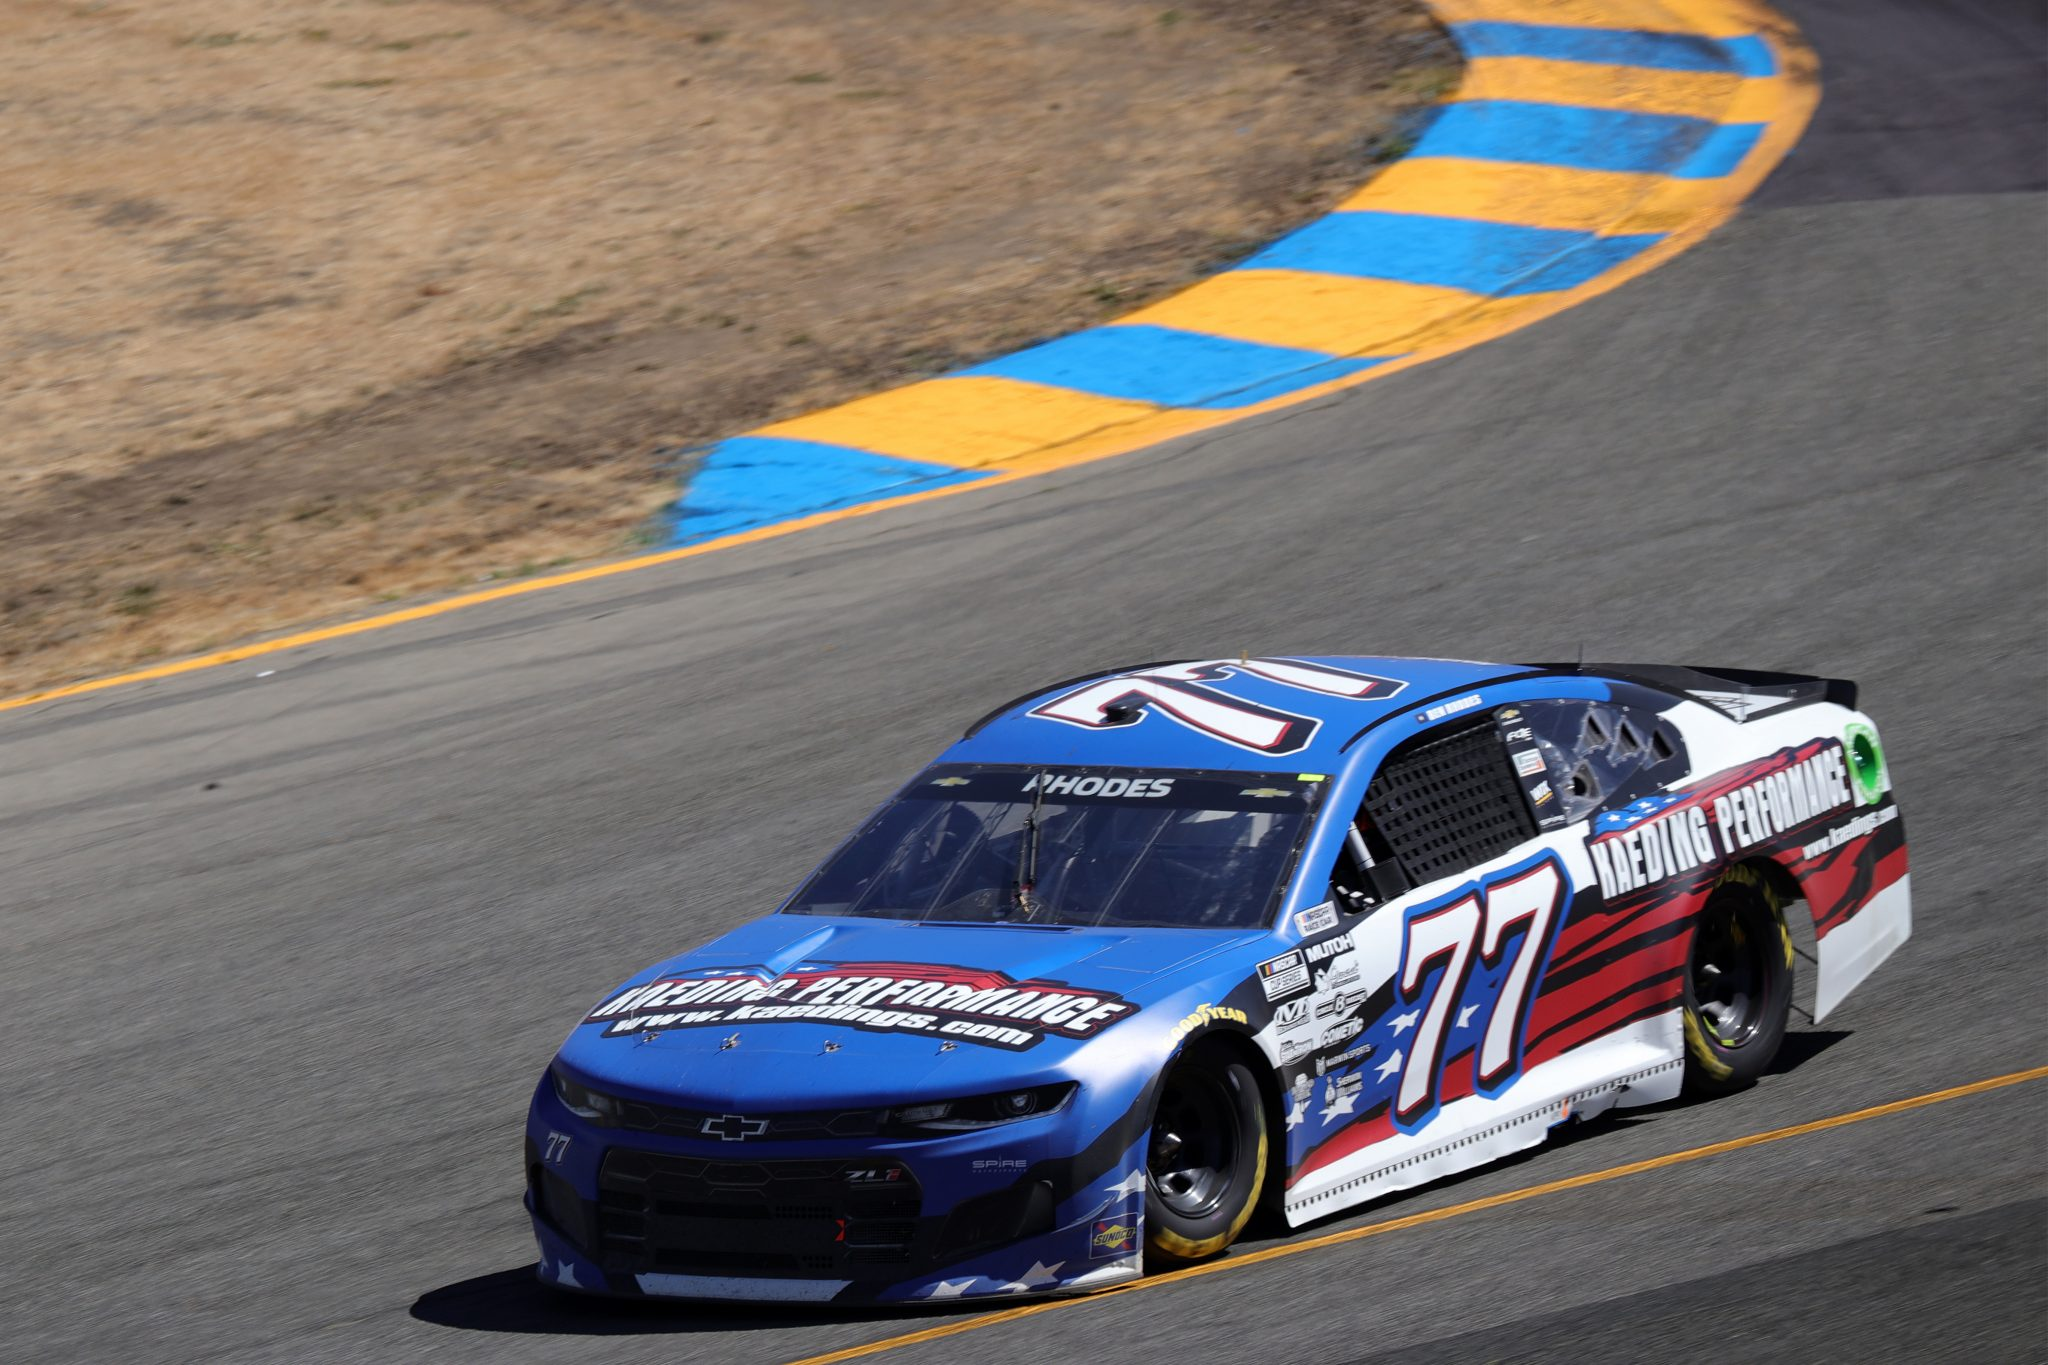 SONOMA, CALIFORNIA - JUNE 06: Ben Rhodes, driver of the #77 Kaeding Performance Chevrolet, drives during the NASCAR Cup Series Toyota/Save Mart 350 at Sonoma Raceway on June 06, 2021 in Sonoma, California. (Photo by Carmen Mandato/Getty Images) | Getty Images